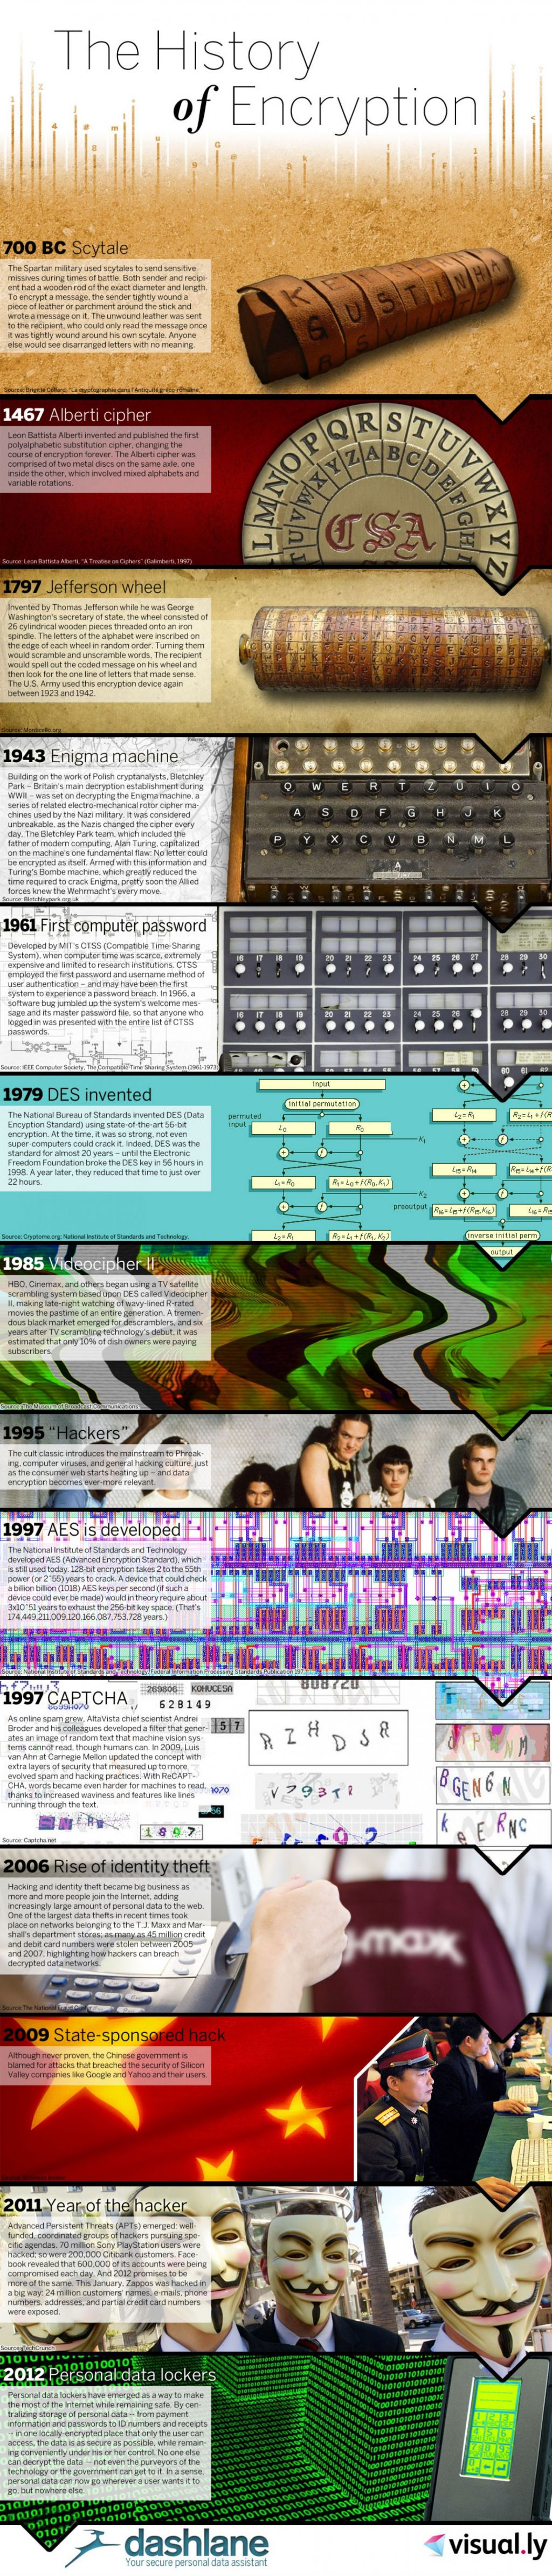 the-history-of-encryption_502917bd24e69_w1500